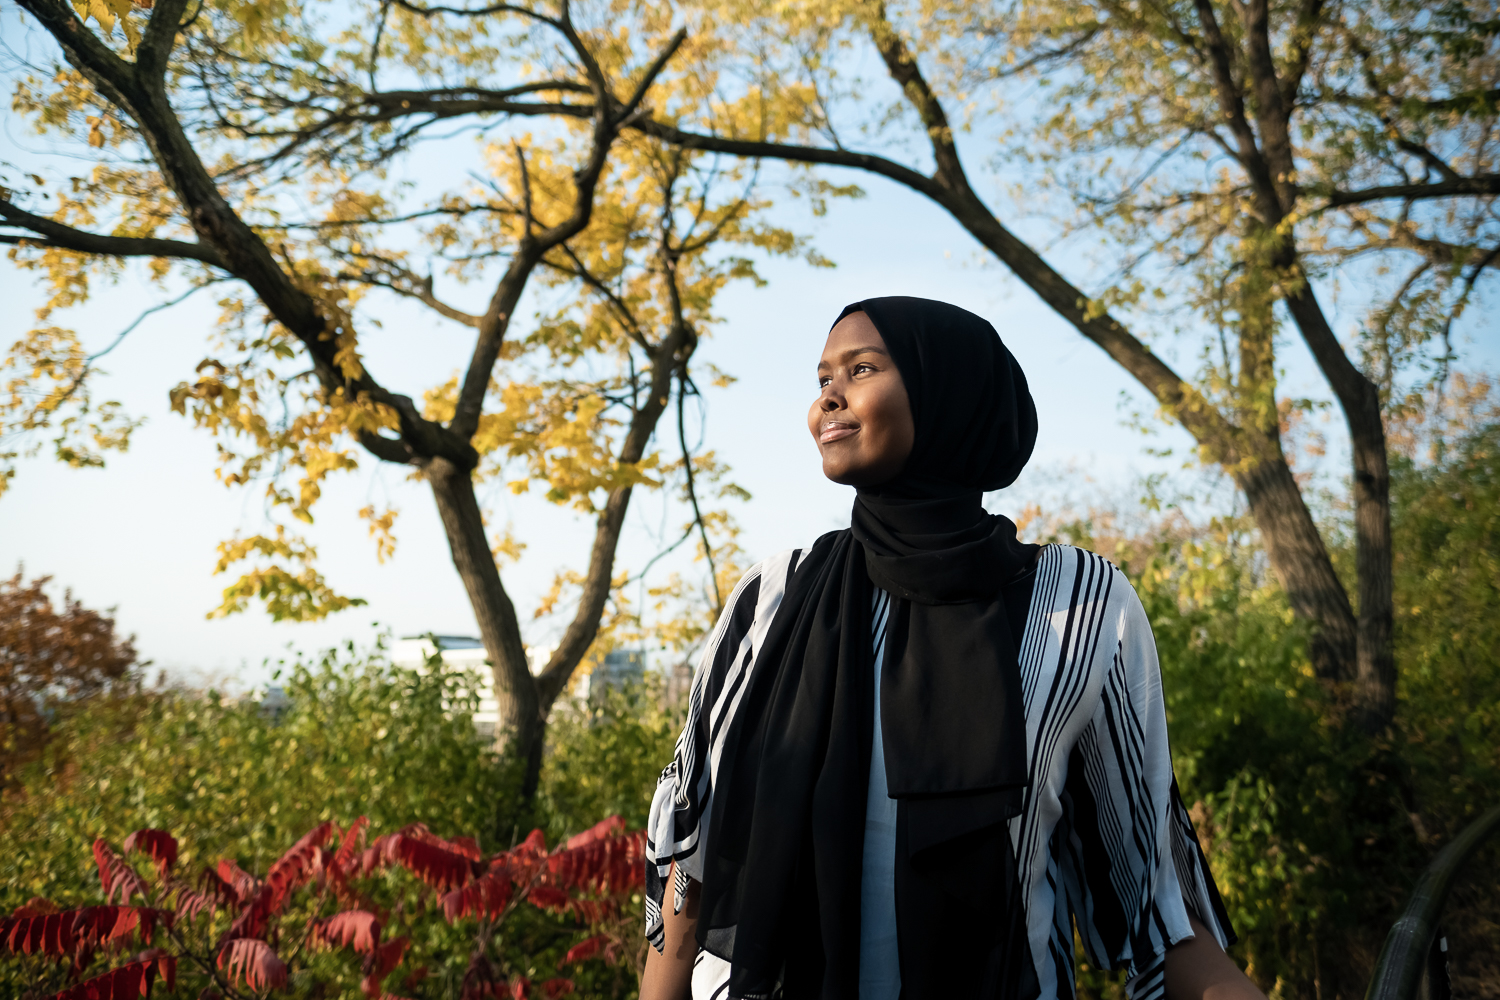 Rahma Farah, 17, of St. Paul, MN, poses for a portrait at a park hear her home on October 9, 2020. On election day this November Farah will  be working at a polling station as a supervisor helping to  register first time voters. She also helps translate election  instructions into Somali.